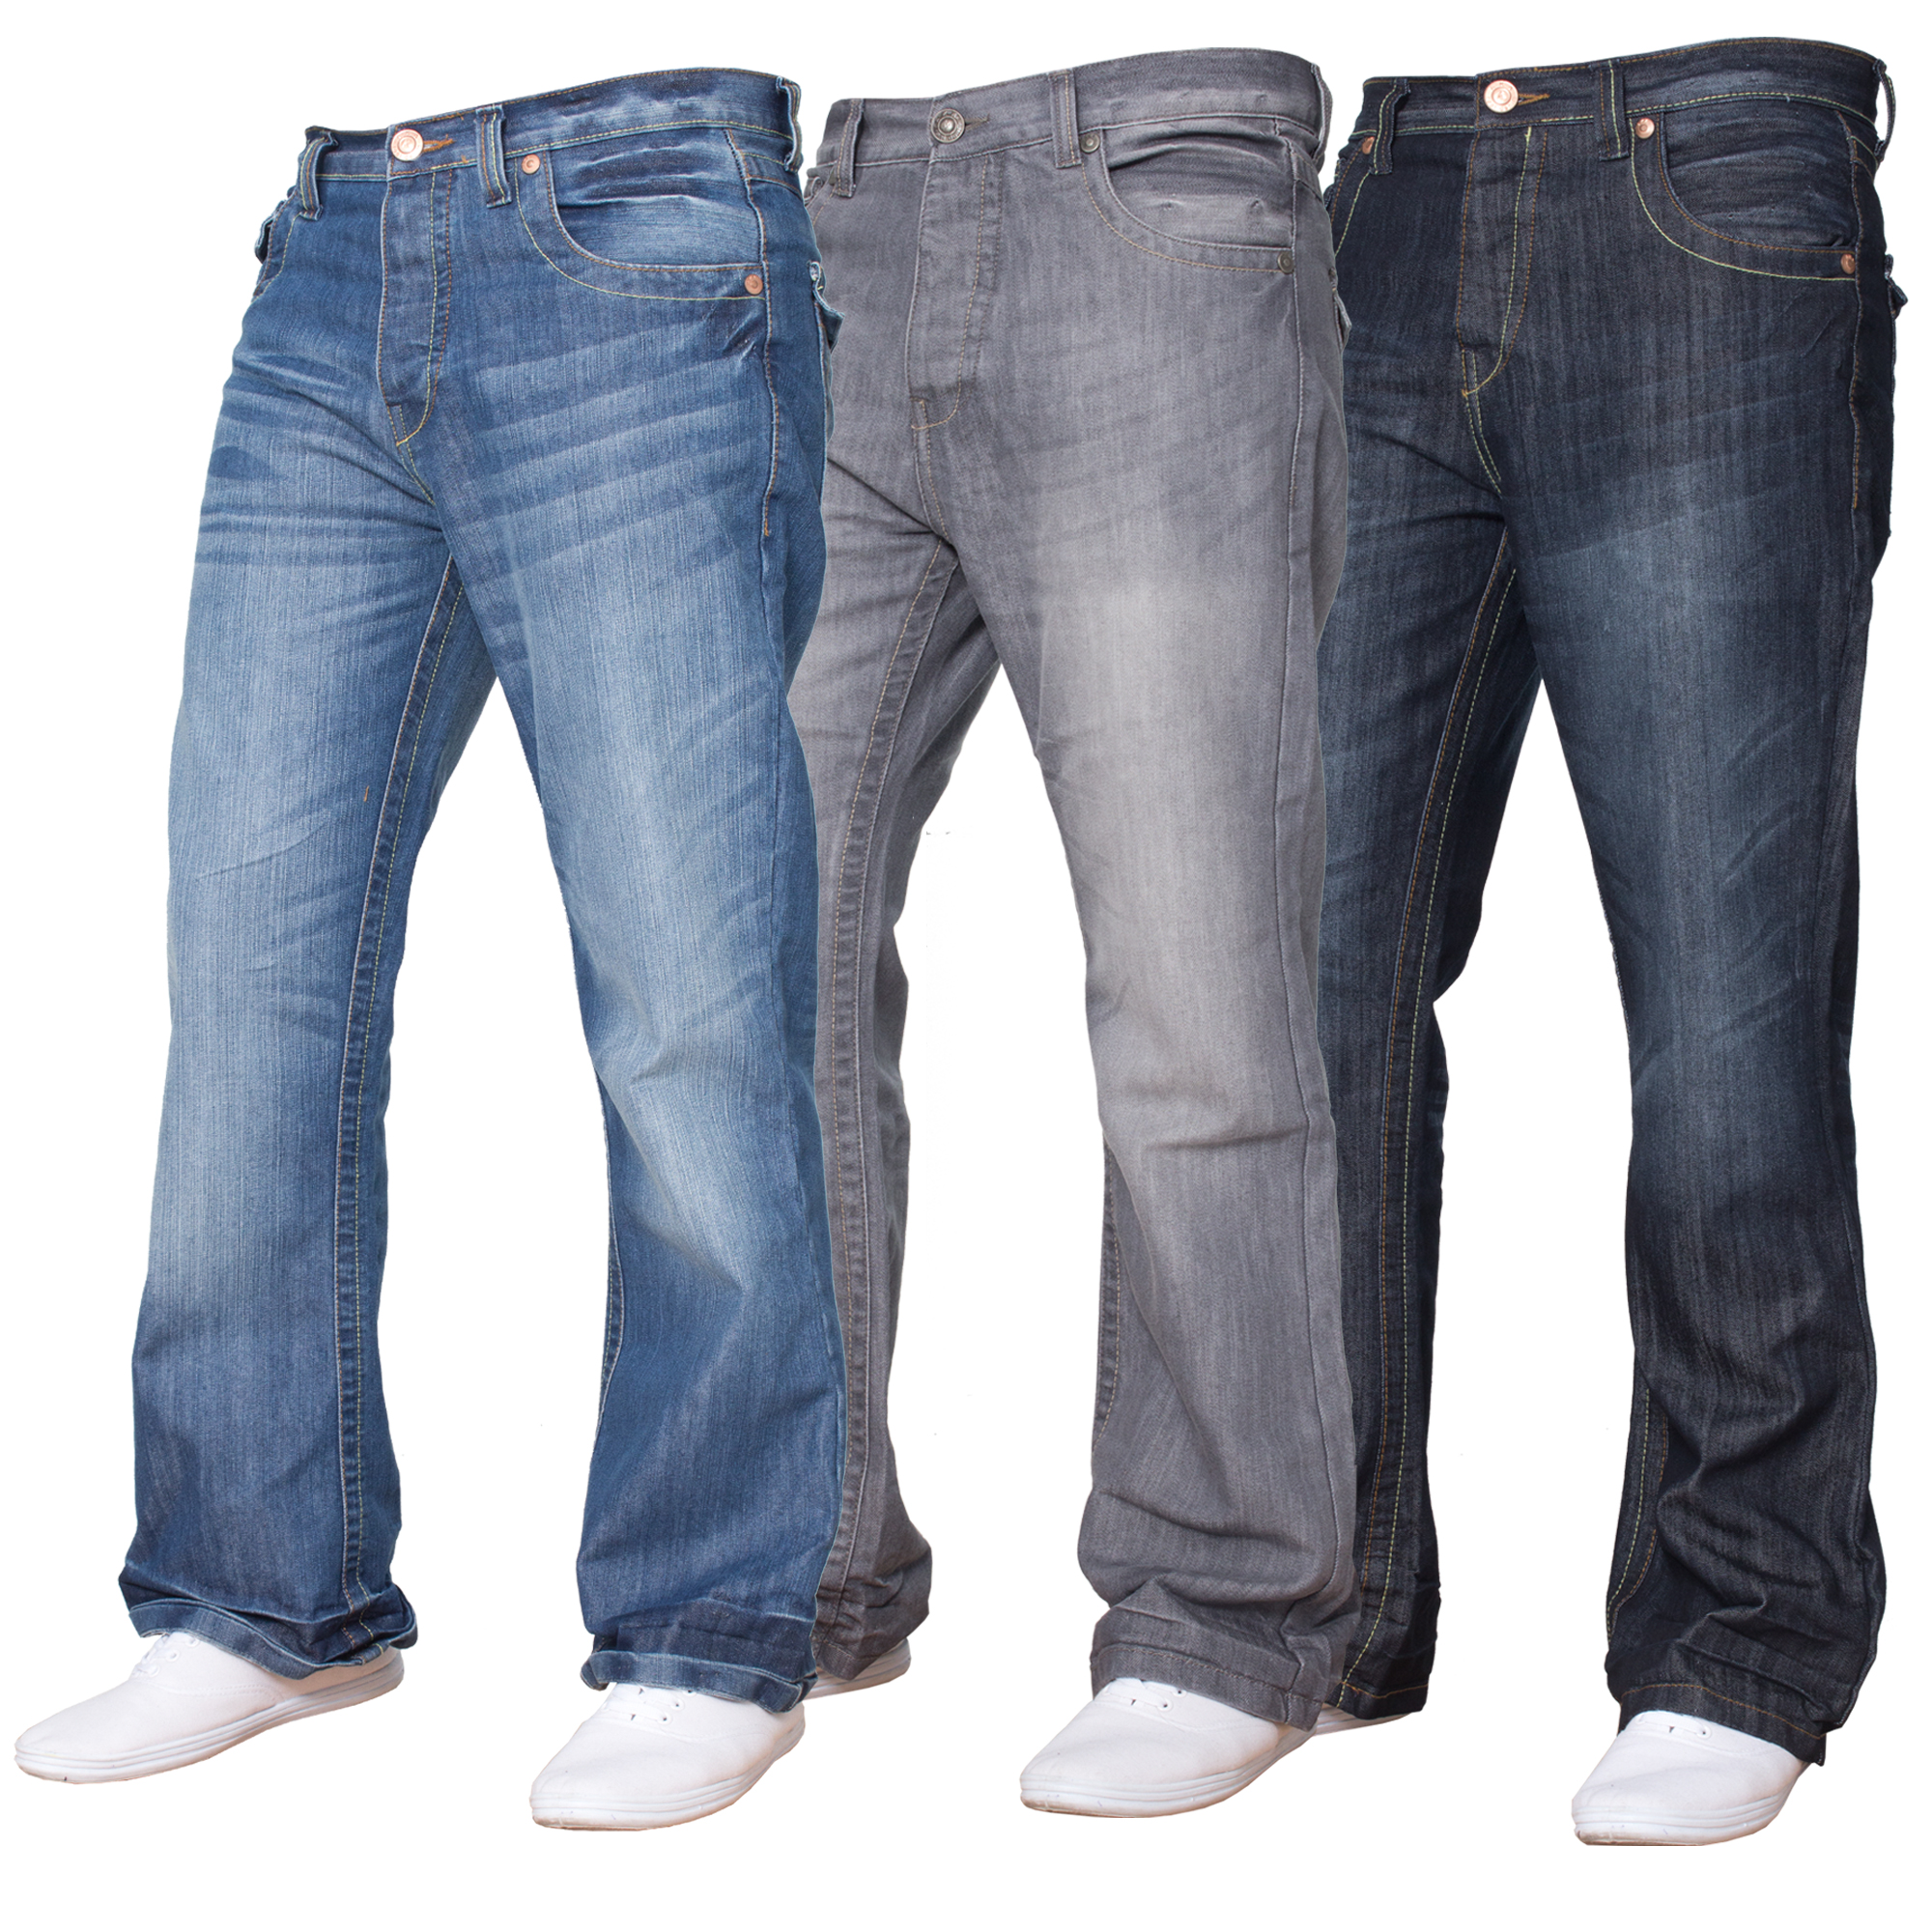 herren apt einfach einfarbig jeans ausgestellt bootcut passform jeans ebay. Black Bedroom Furniture Sets. Home Design Ideas